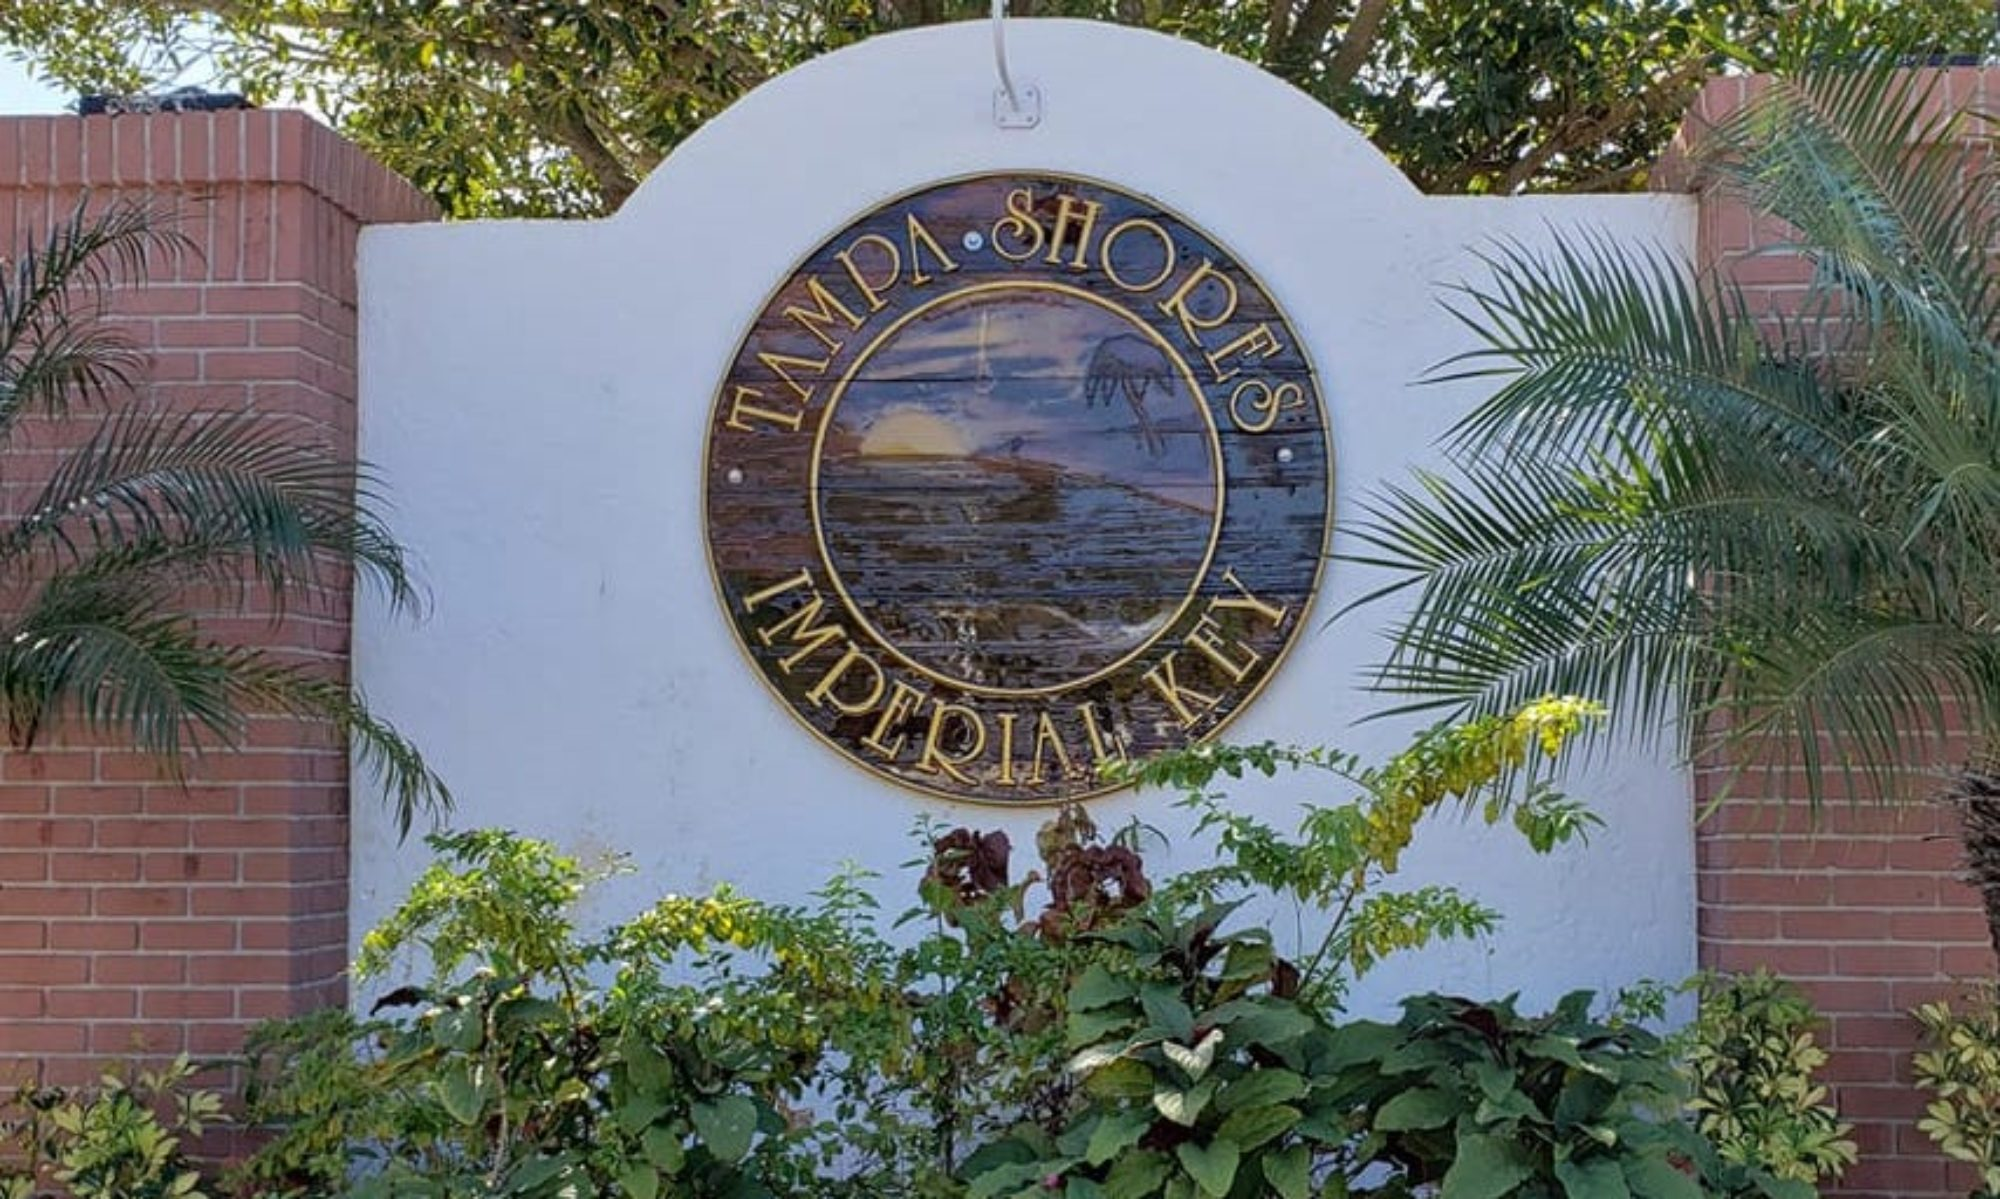 Tampa Shores Special Dependent District